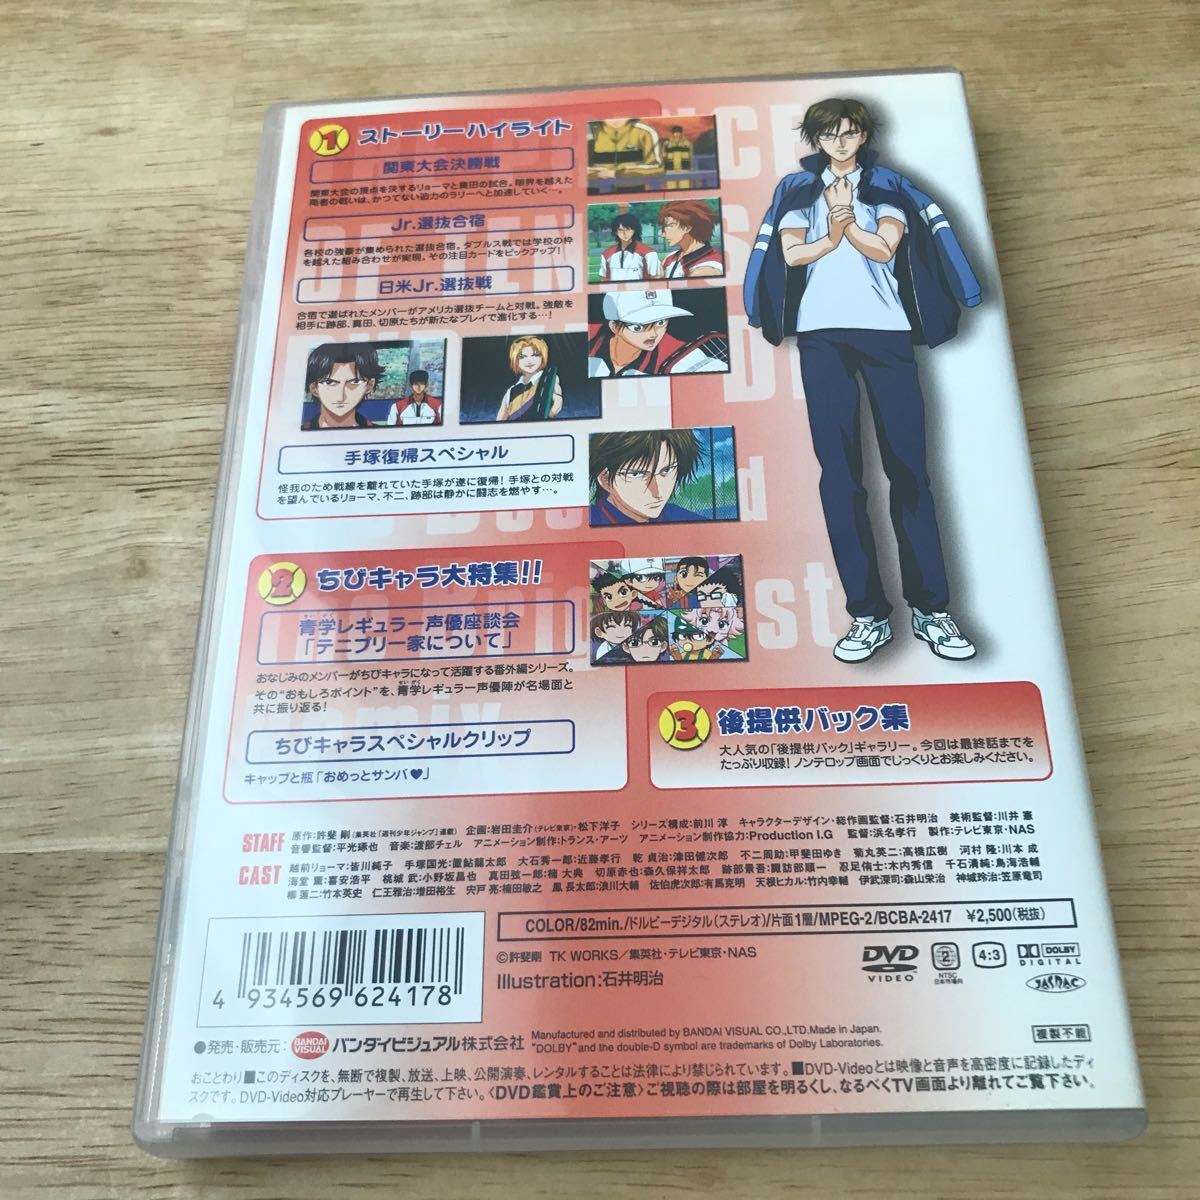 【DVD】テニスの王子様 DVD FAN DISC The Best and The Brightest Remix【アニメ】